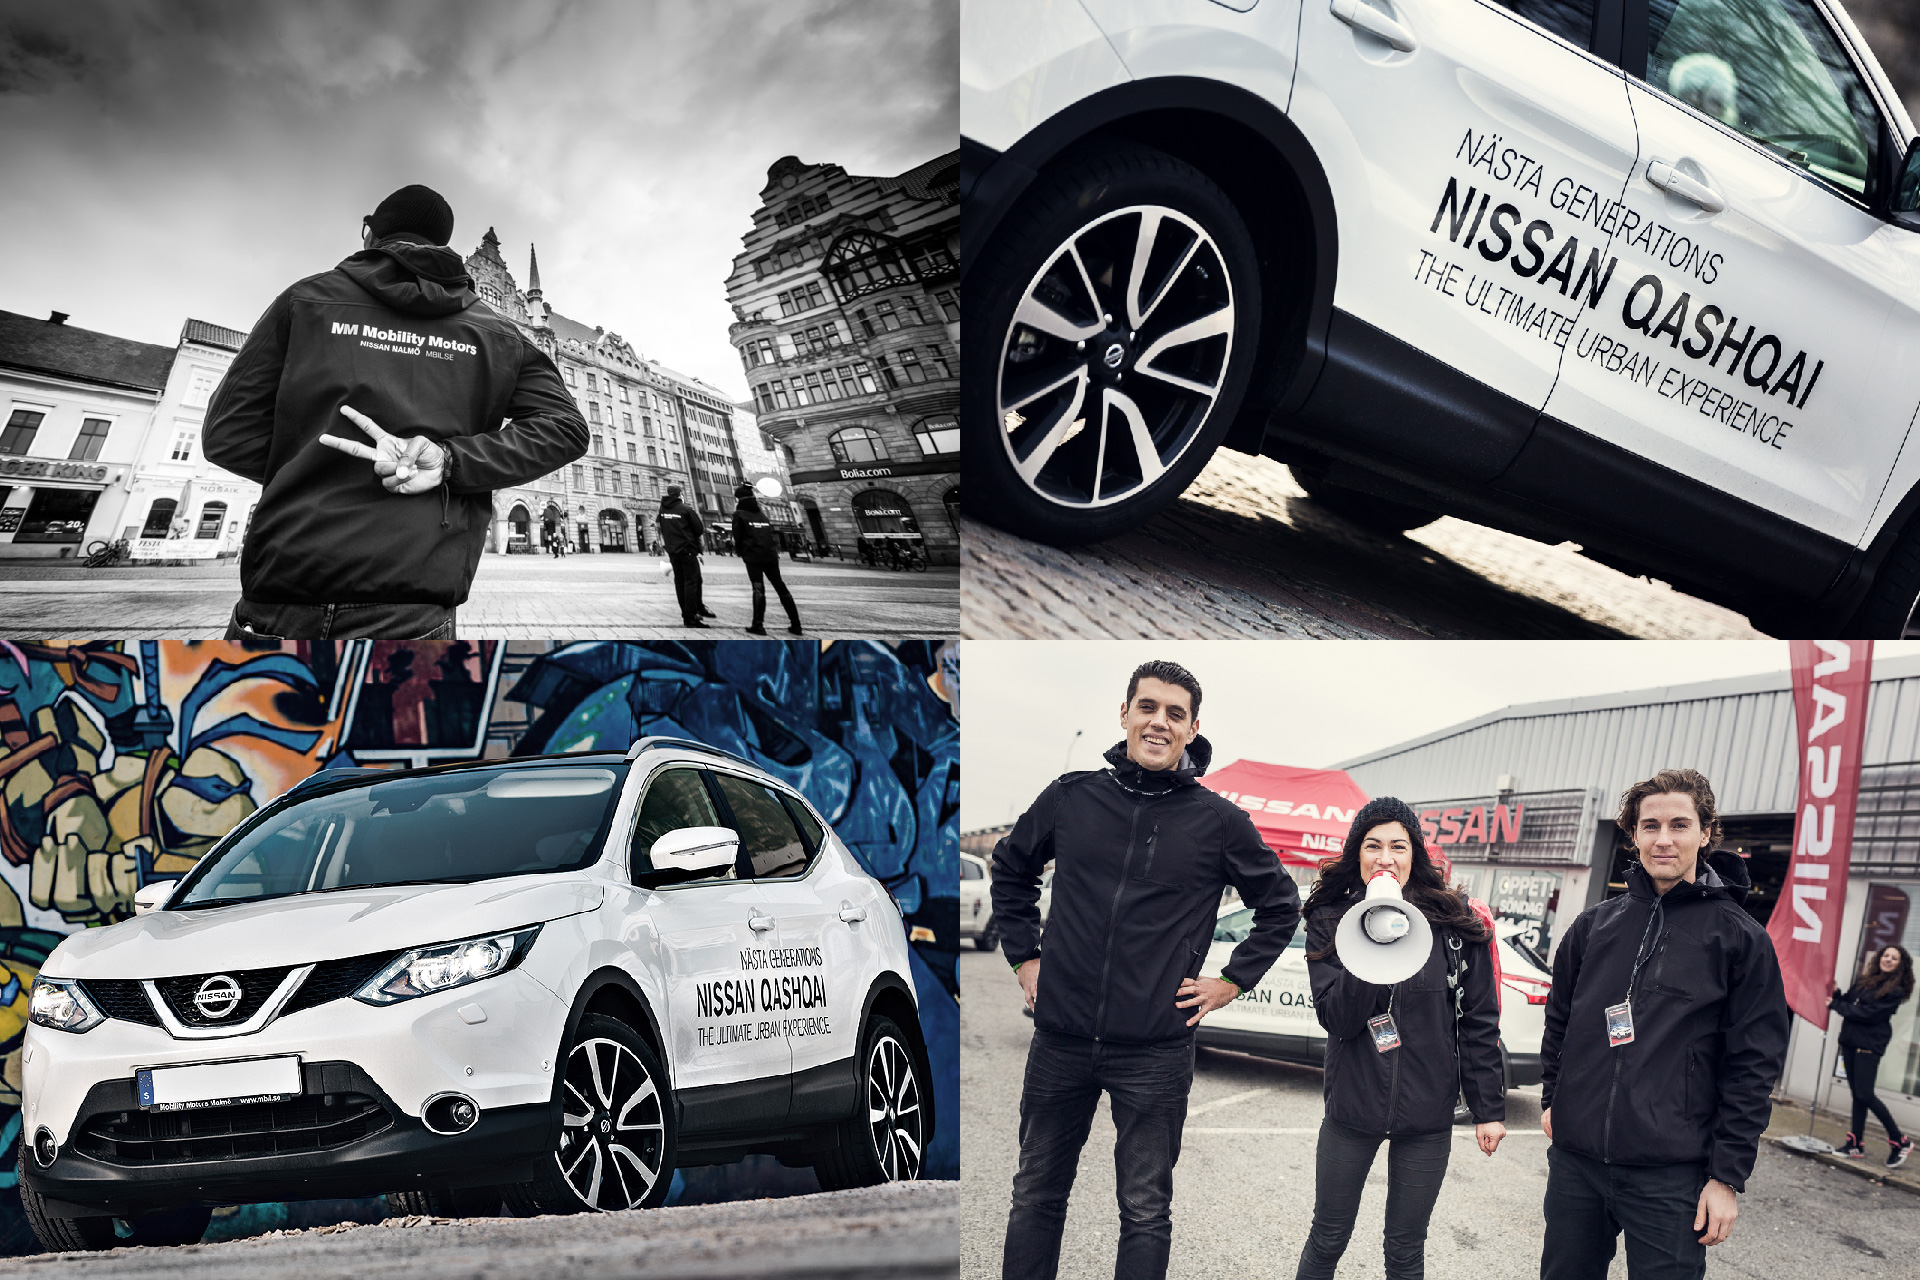 #MOBILITYMOTORS, Brand Experience, Expo, Displays, Roadshows, Guerrilla Marketing, Events